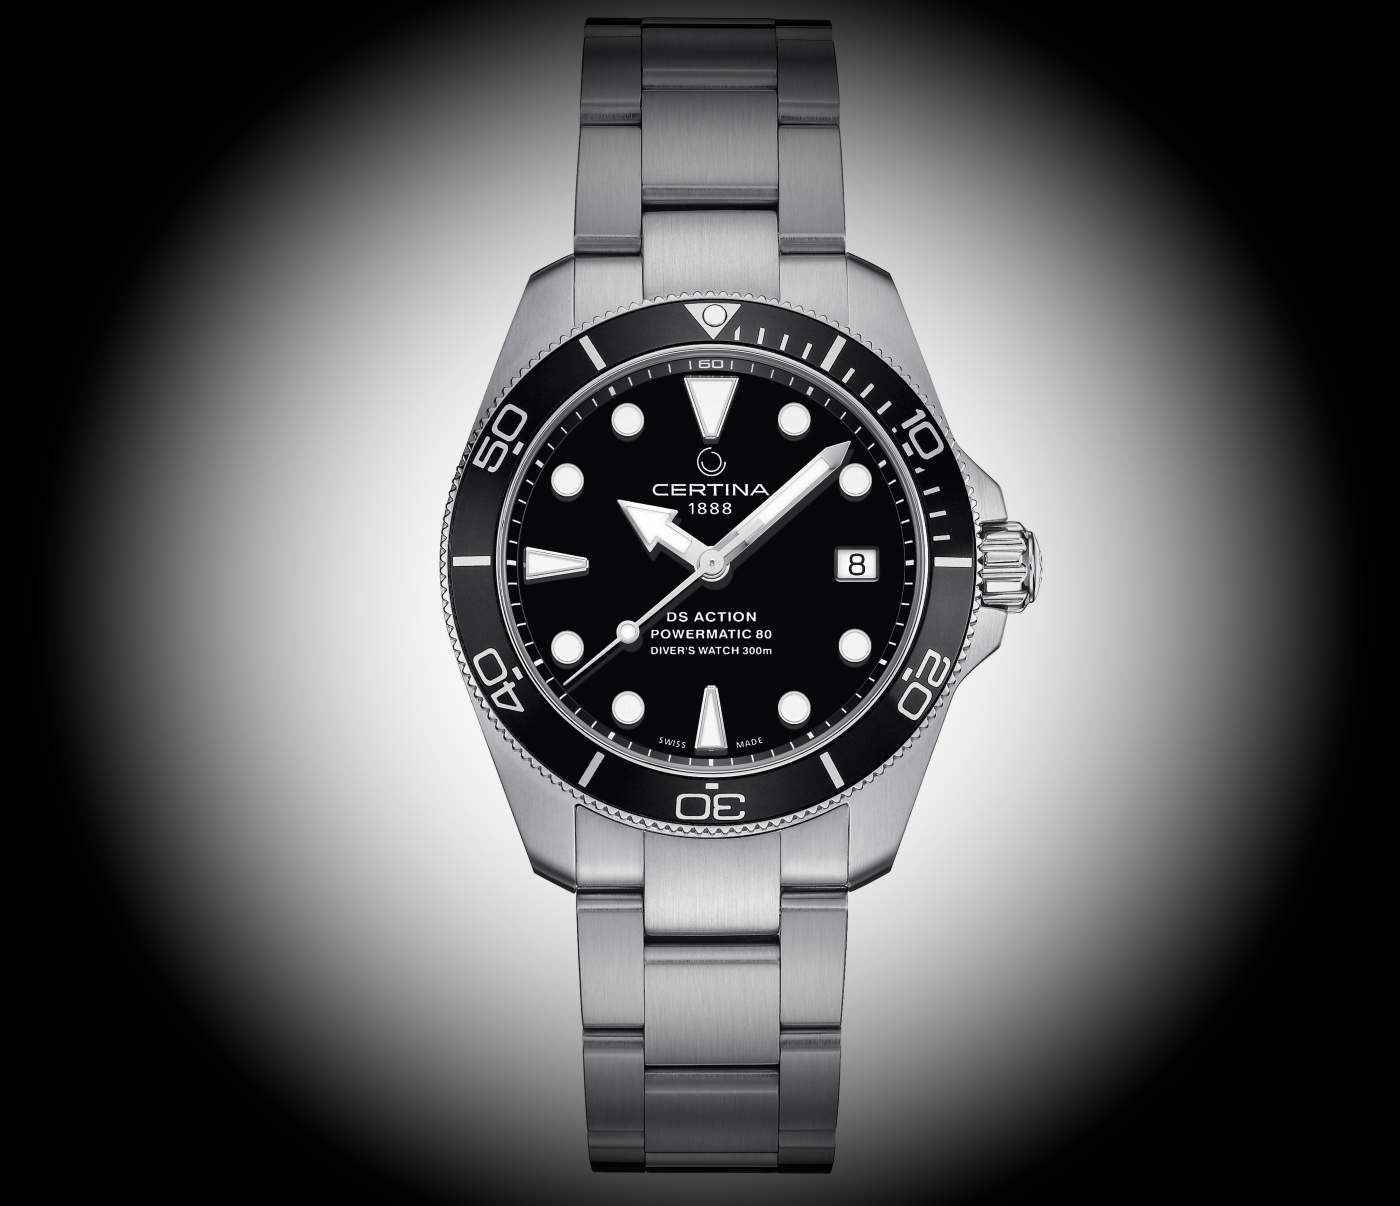 certina_ds_action_diver_black_-_europa_star_magazine_2021